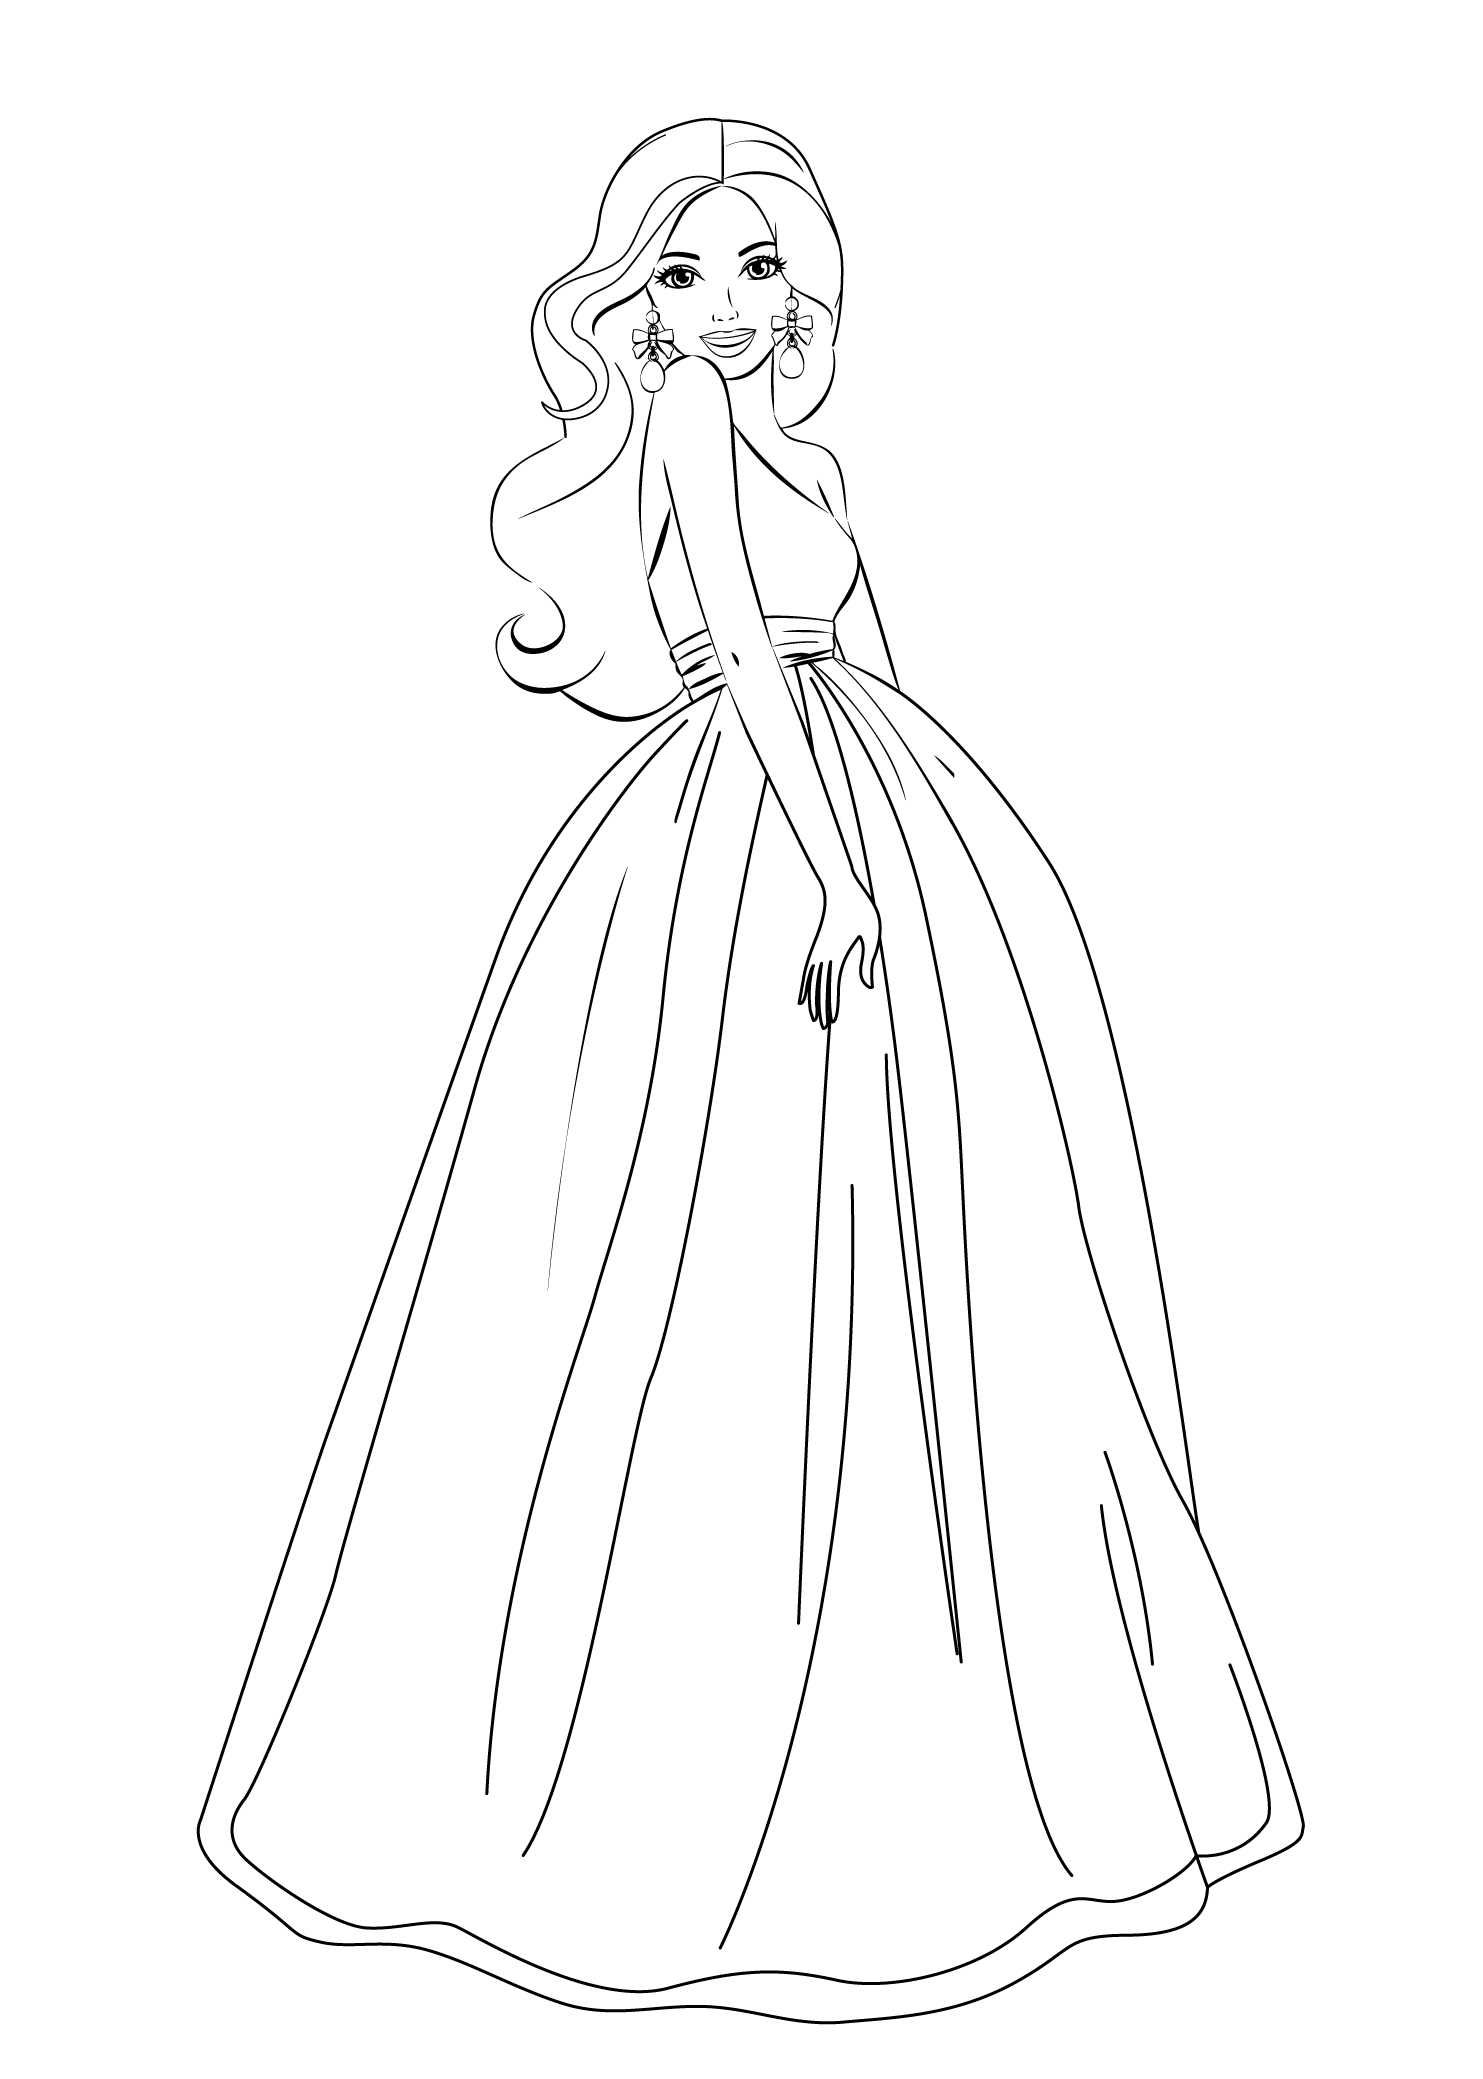 Refundable Barbie Pics To Print Coloring Pages Out For Girls Free